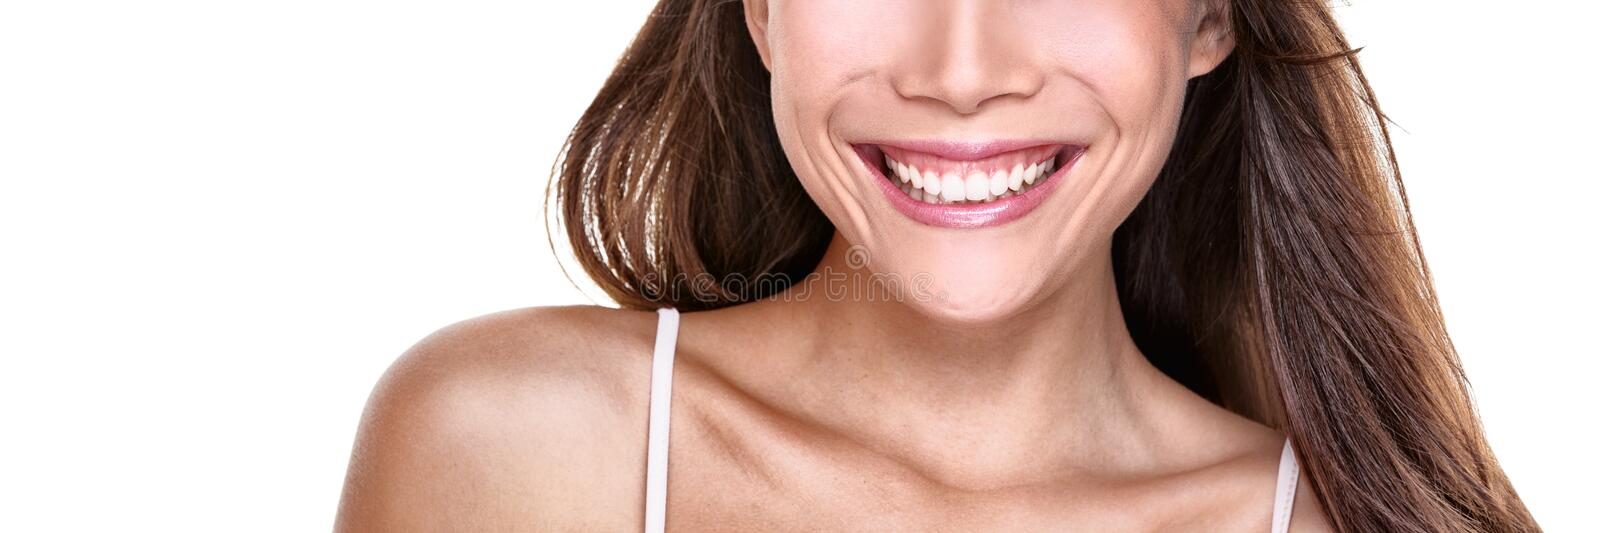 Perfect smile smiling woman with white teeth on white background copy space banner. Closeup of mouth and smile royalty free stock photos